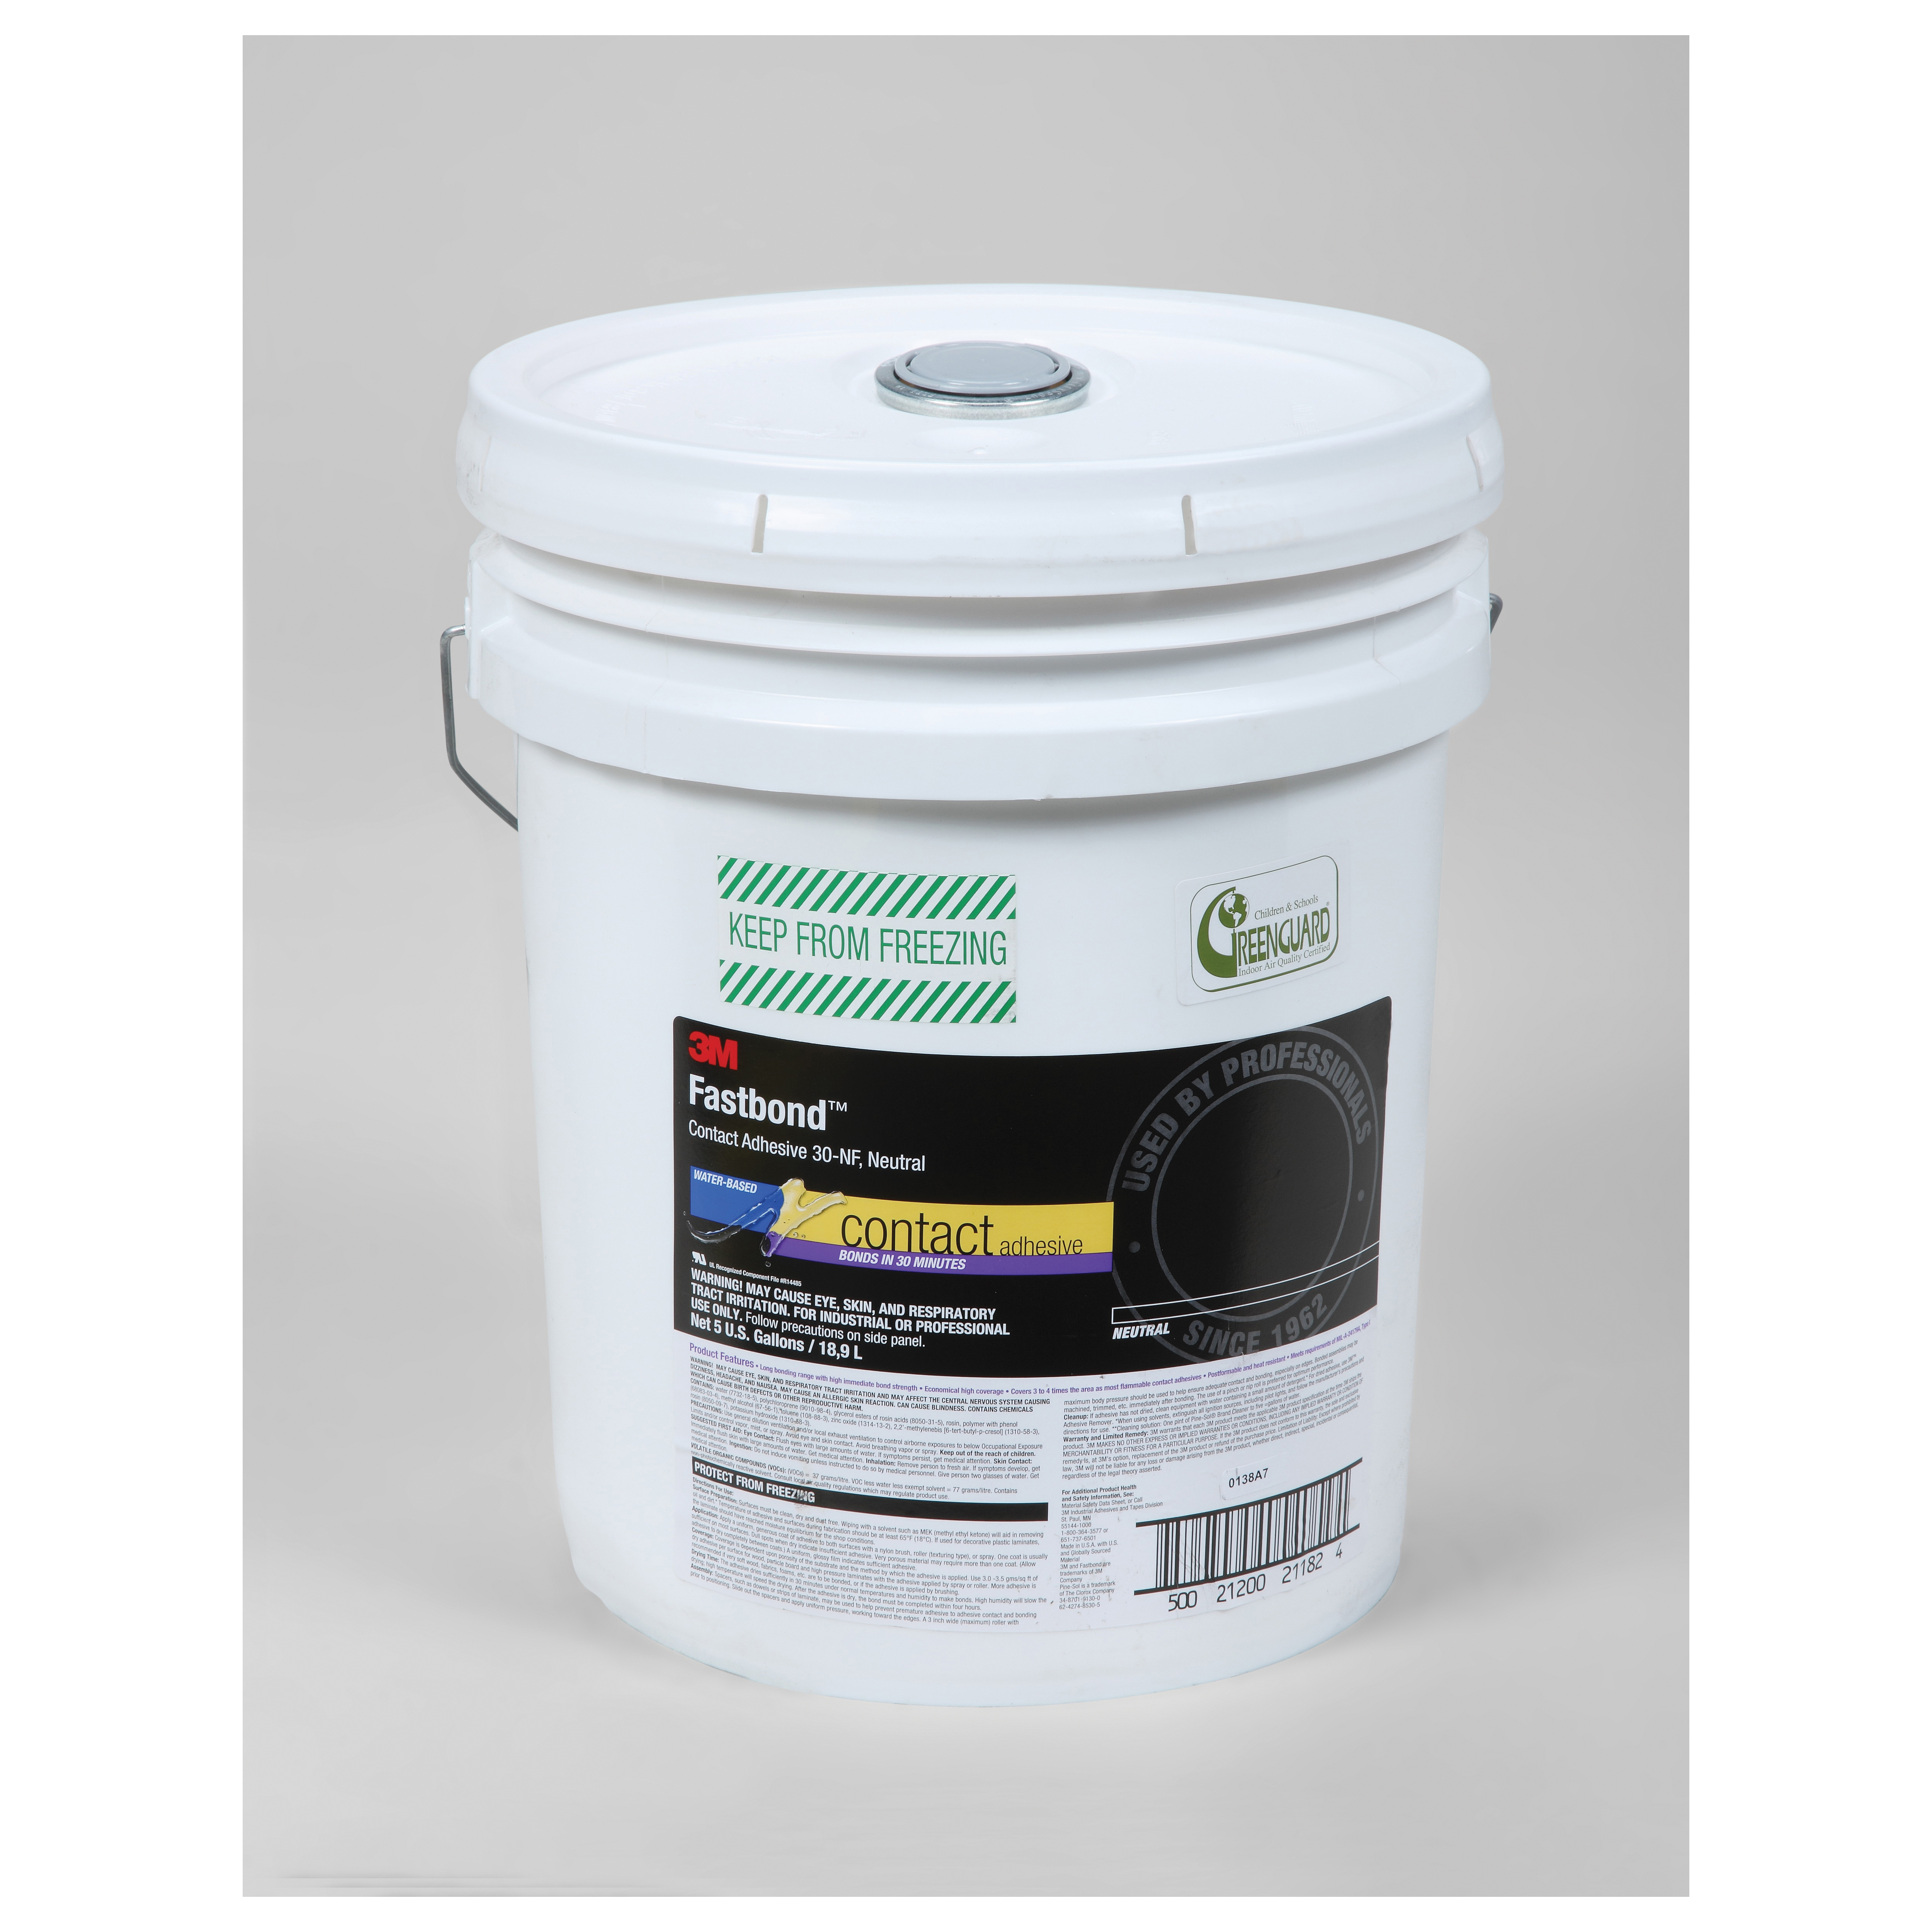 3M™ Fastbond™ 021200-21182 High Strength Non-Flammable Contact Adhesive, 5 gal Pail, White, Up to 4 hr Curing